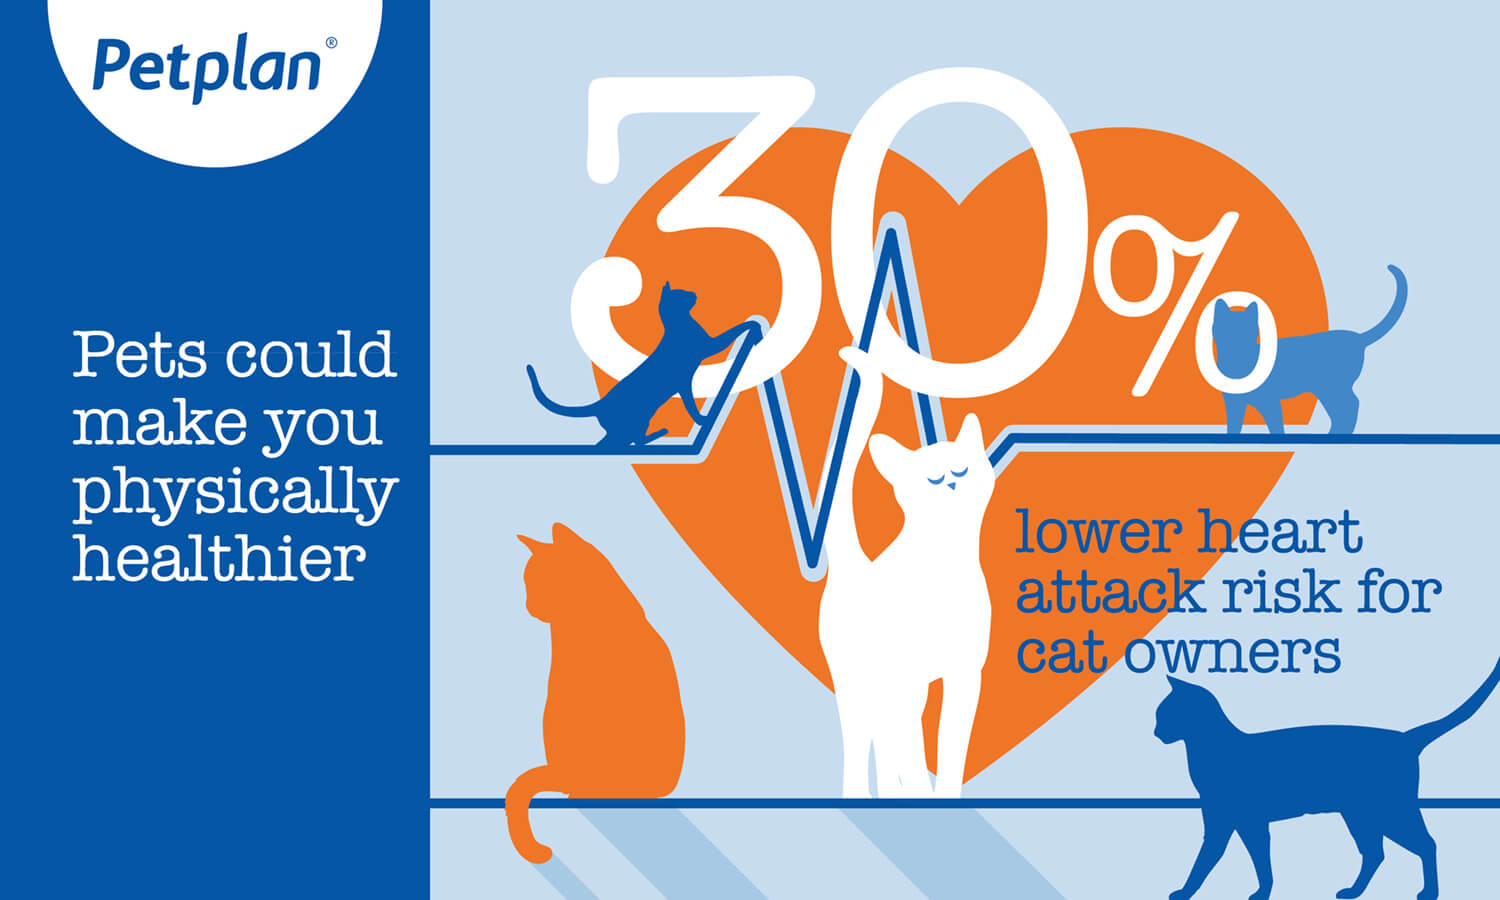 Infographic: 30% lower heart attack risk for cat owners img